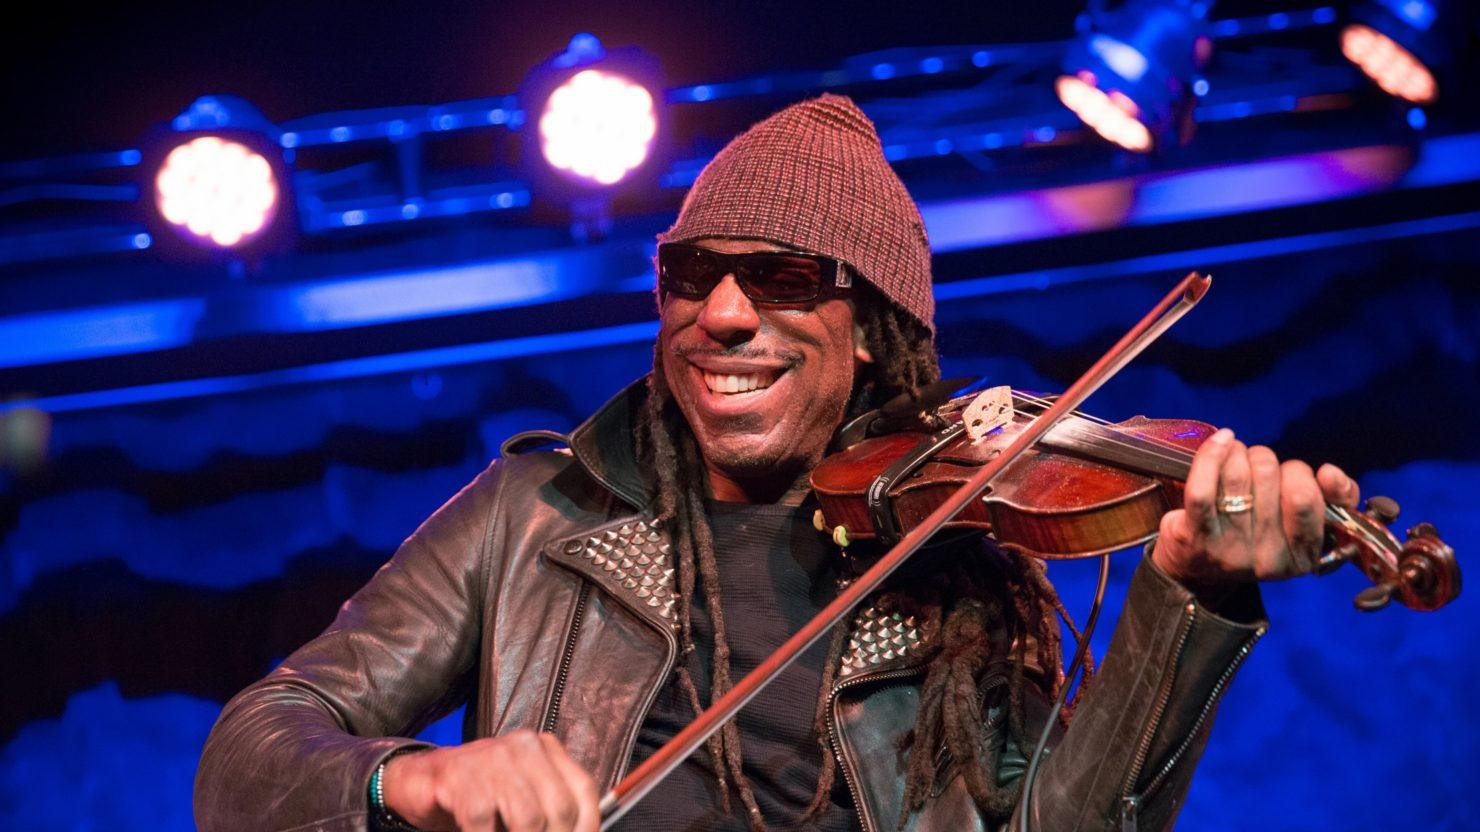 Boyd Tinsley Tour Dates And Concert Tickets